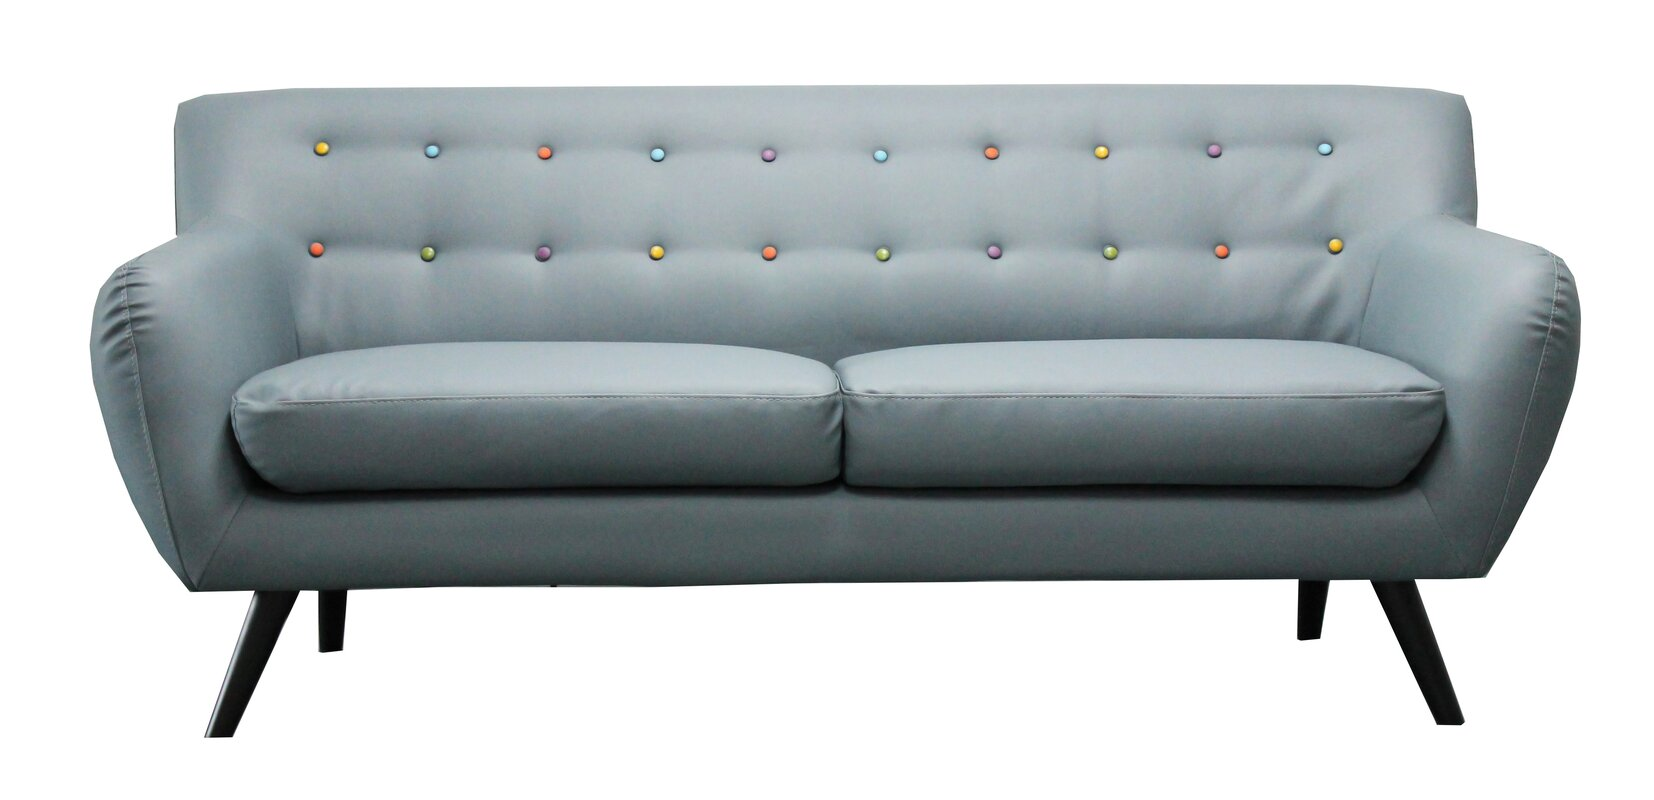 Mid century modern tufted sofa reviews allmodern for All modern furniture